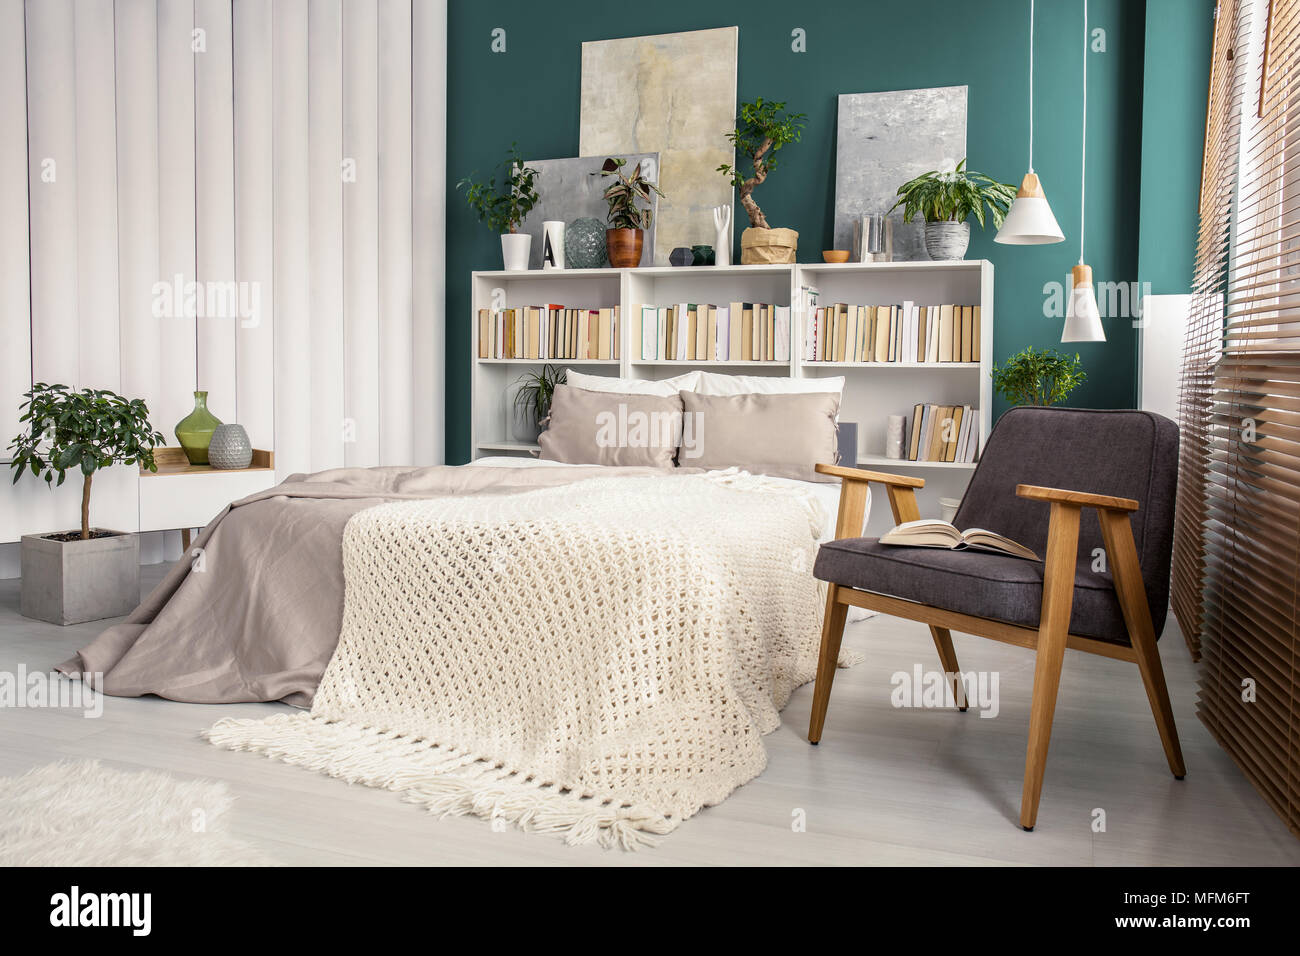 White and green bedroom interior with a knit blanket on beige bed ...